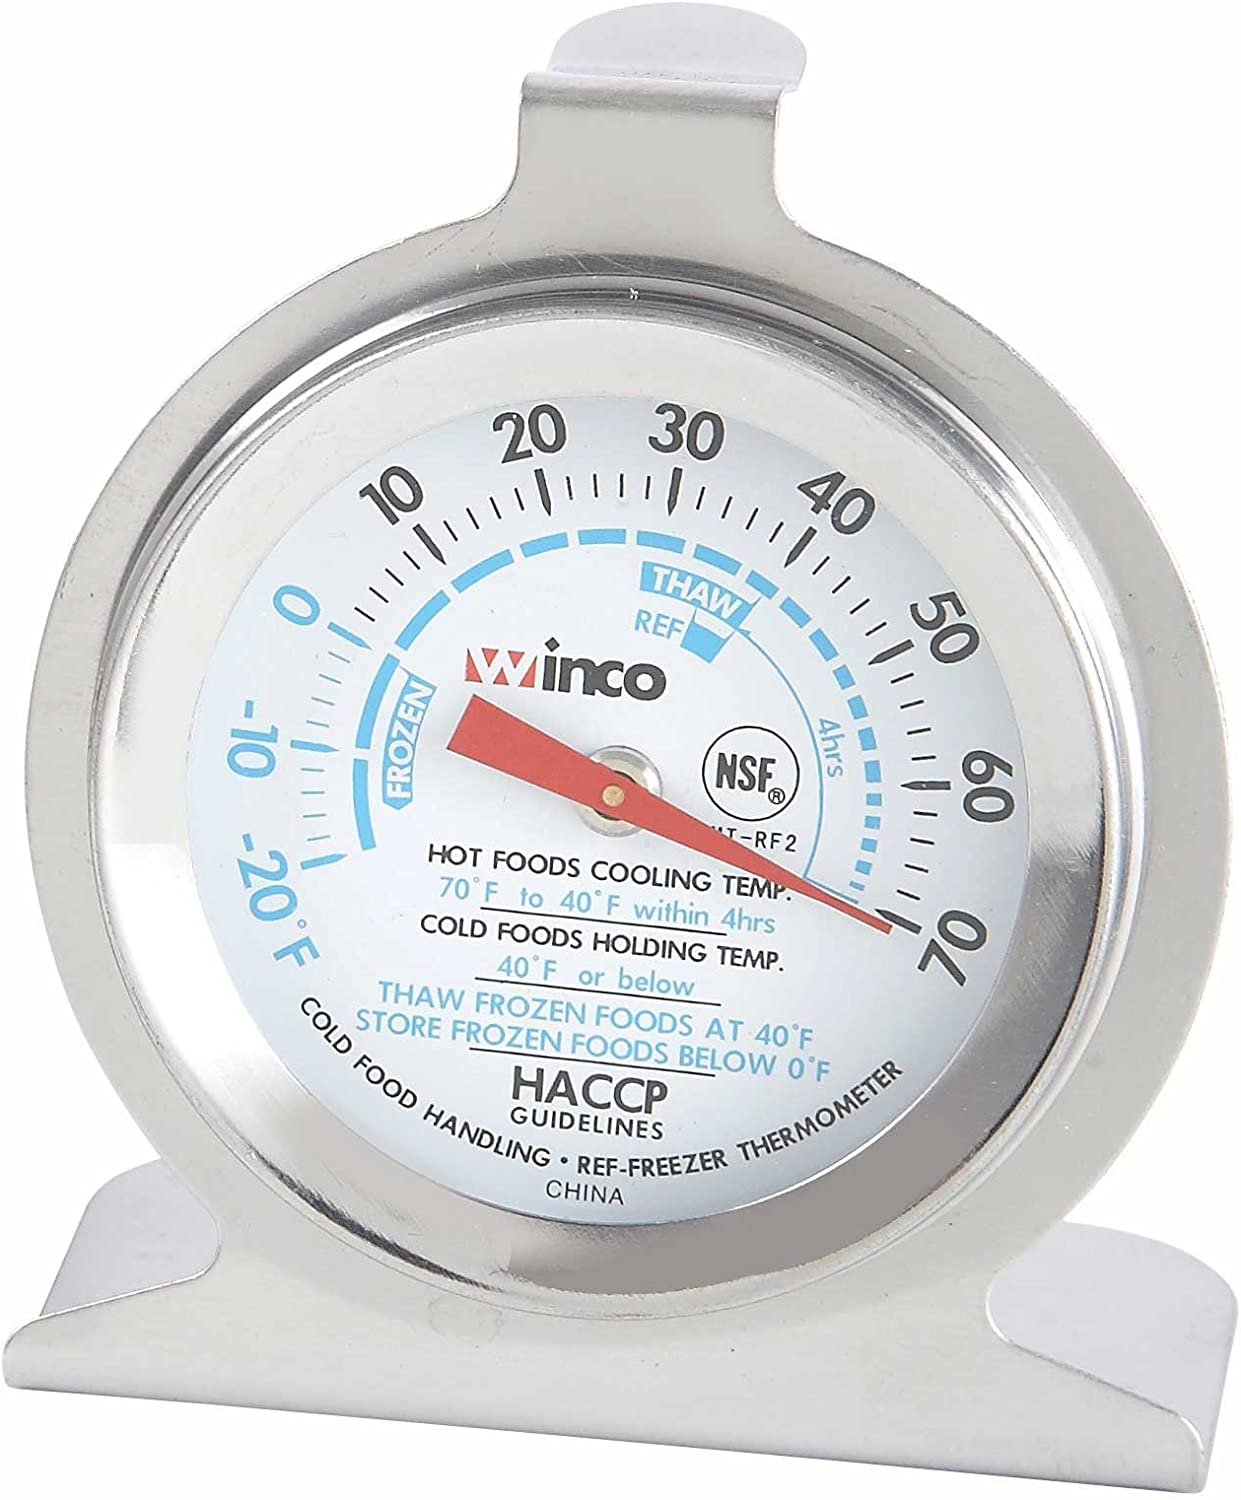 Winco Dial Refrigerator/Freezer Thermometer with Hook and Panel Base, 2-Inch